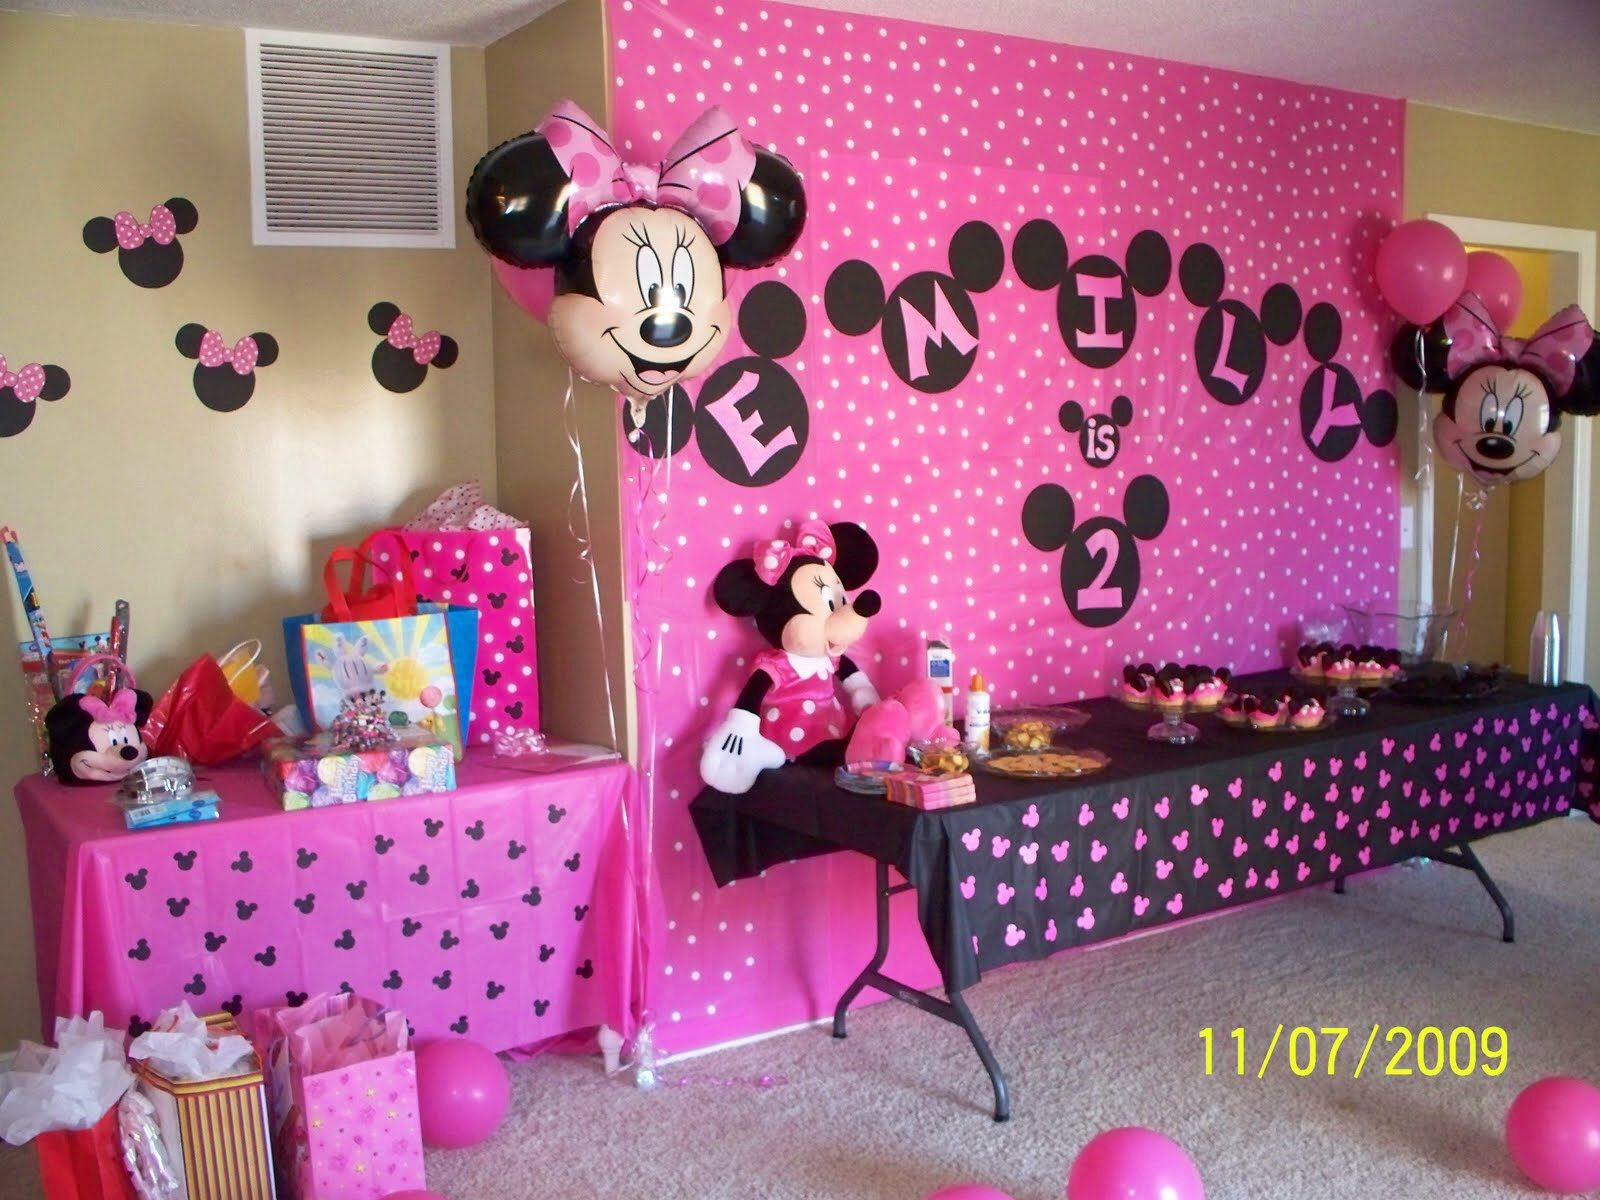 Homemade Decorations Minnie Mouse